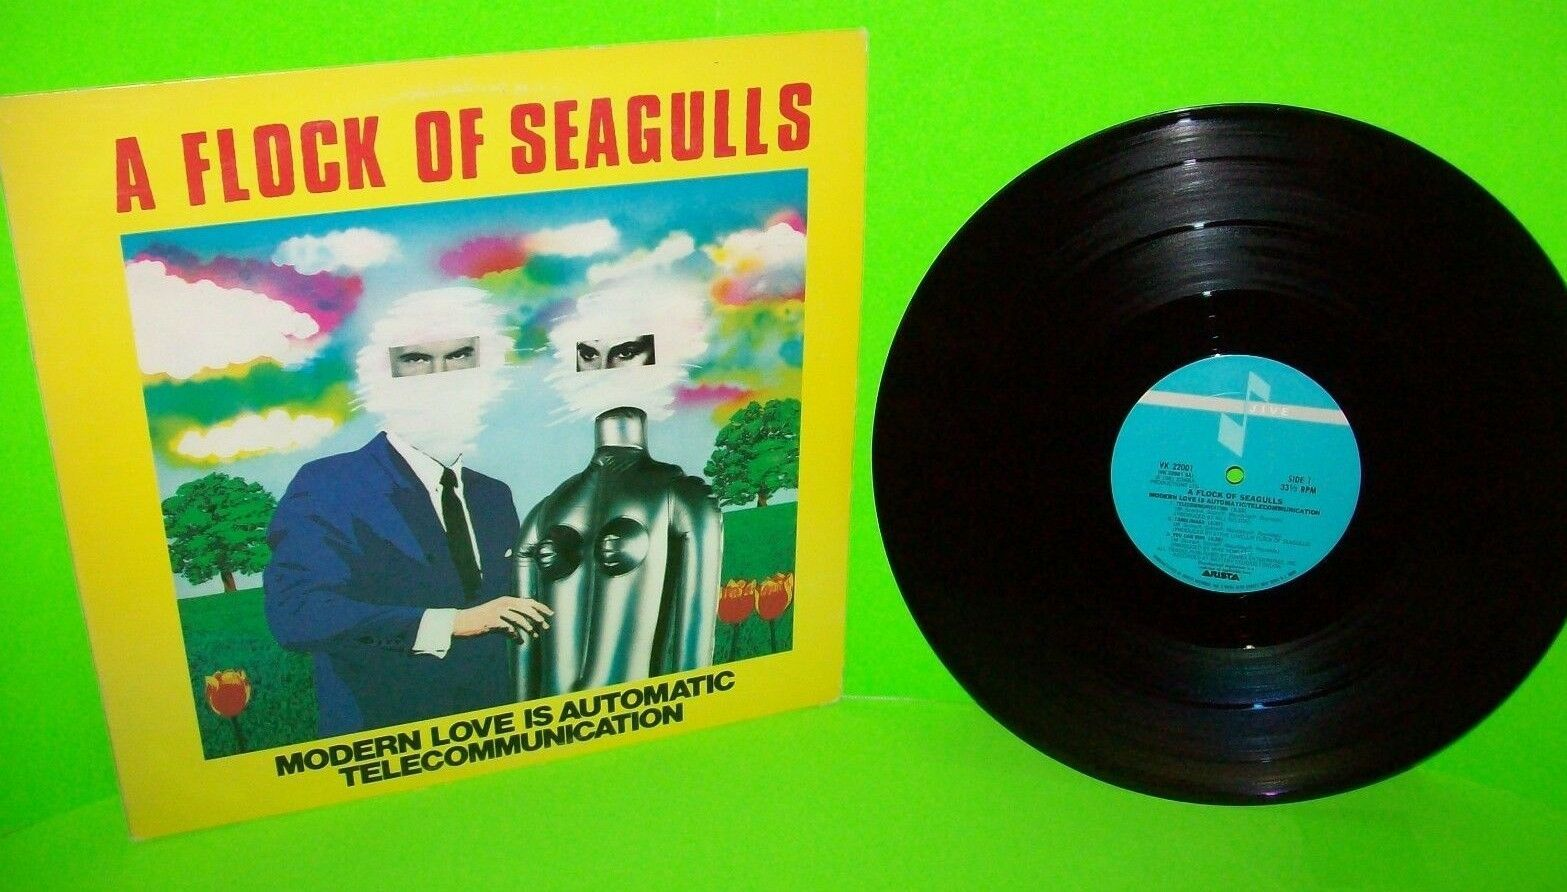 "A FLOCK OF SEAGULLS Modern Love Is Automatic 12"" Vinyl Record New Wave Synth-Pop"